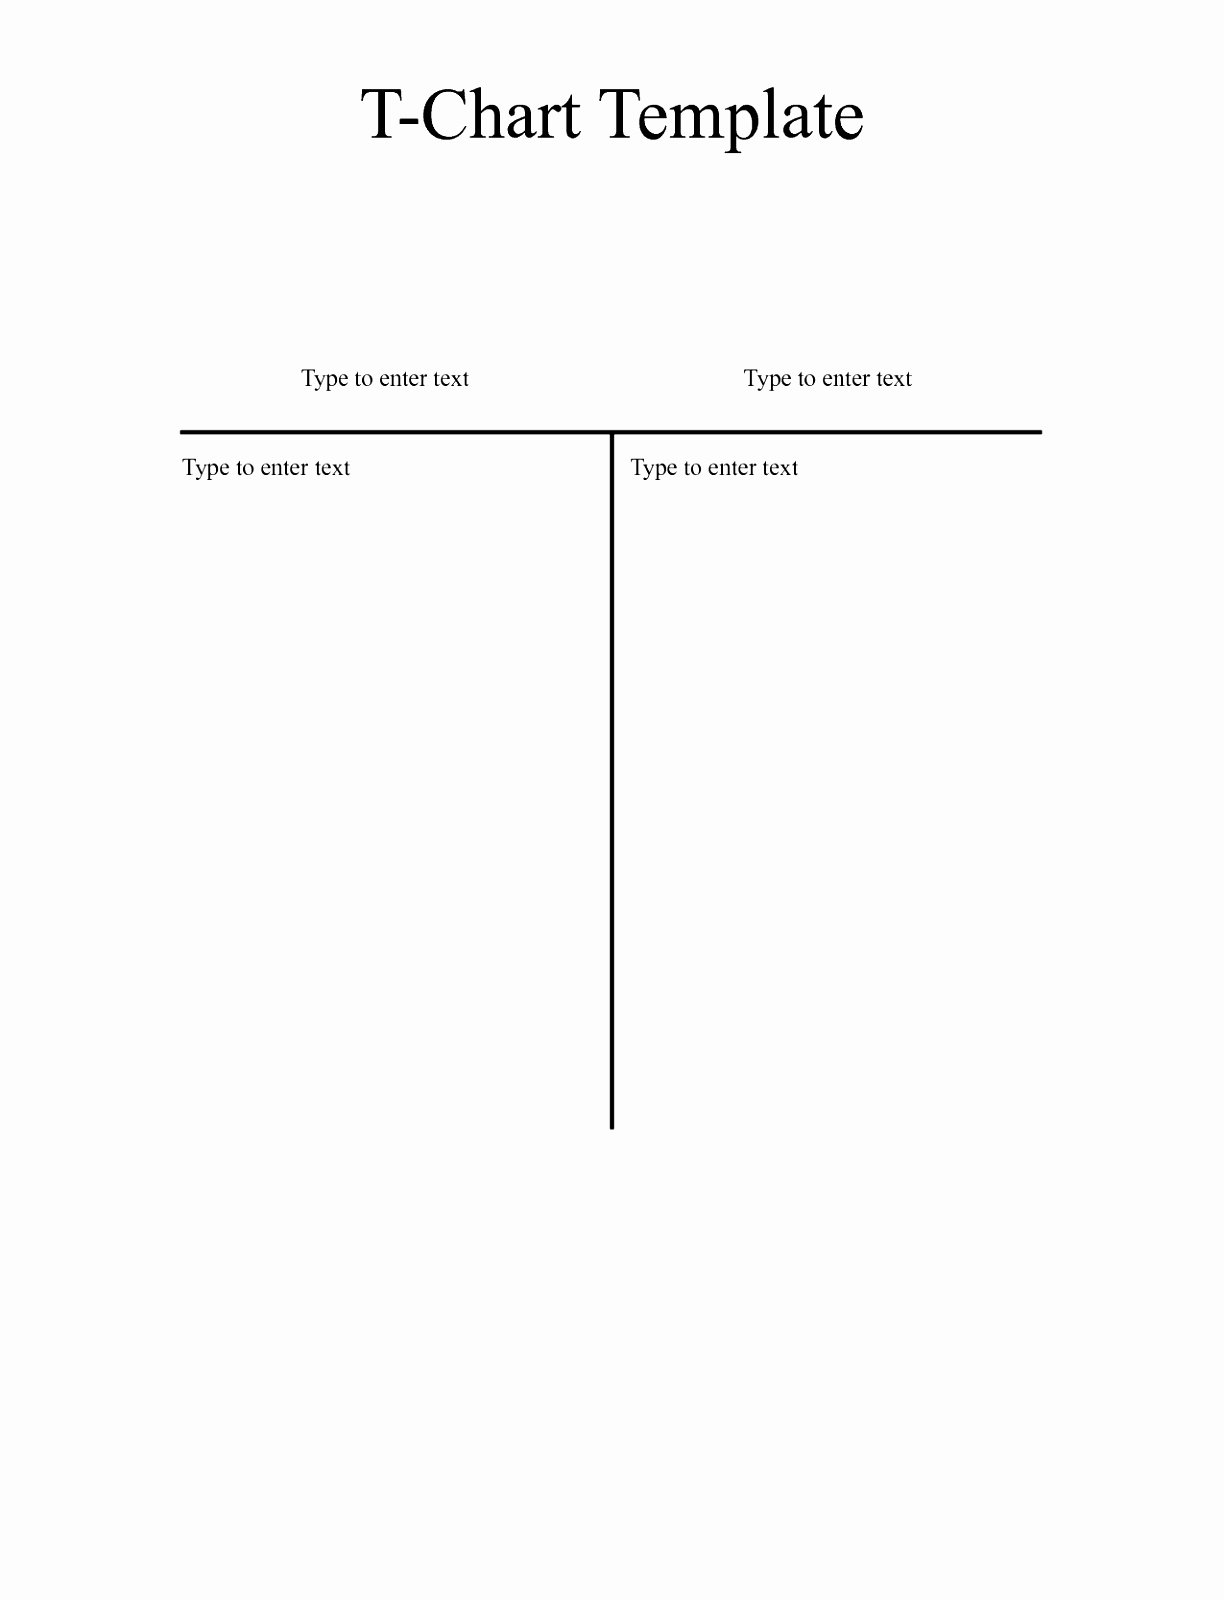 T Chart Template Word Best Of 6 T Chart Template for Word Waoay